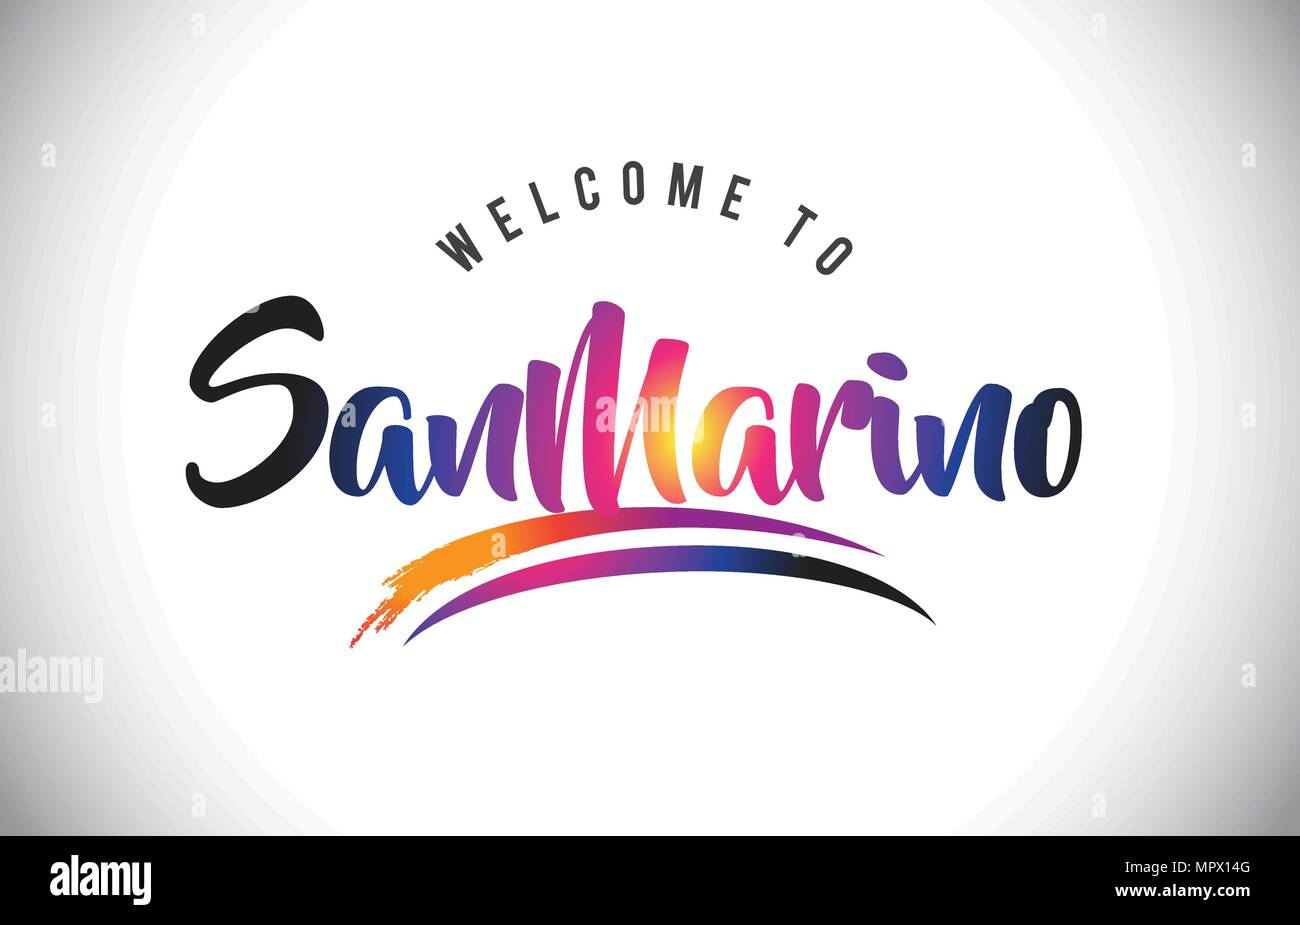 SanMarino Welcome To Message in Purple Vibrant Modern Colors Vector Illustration. - Stock Image